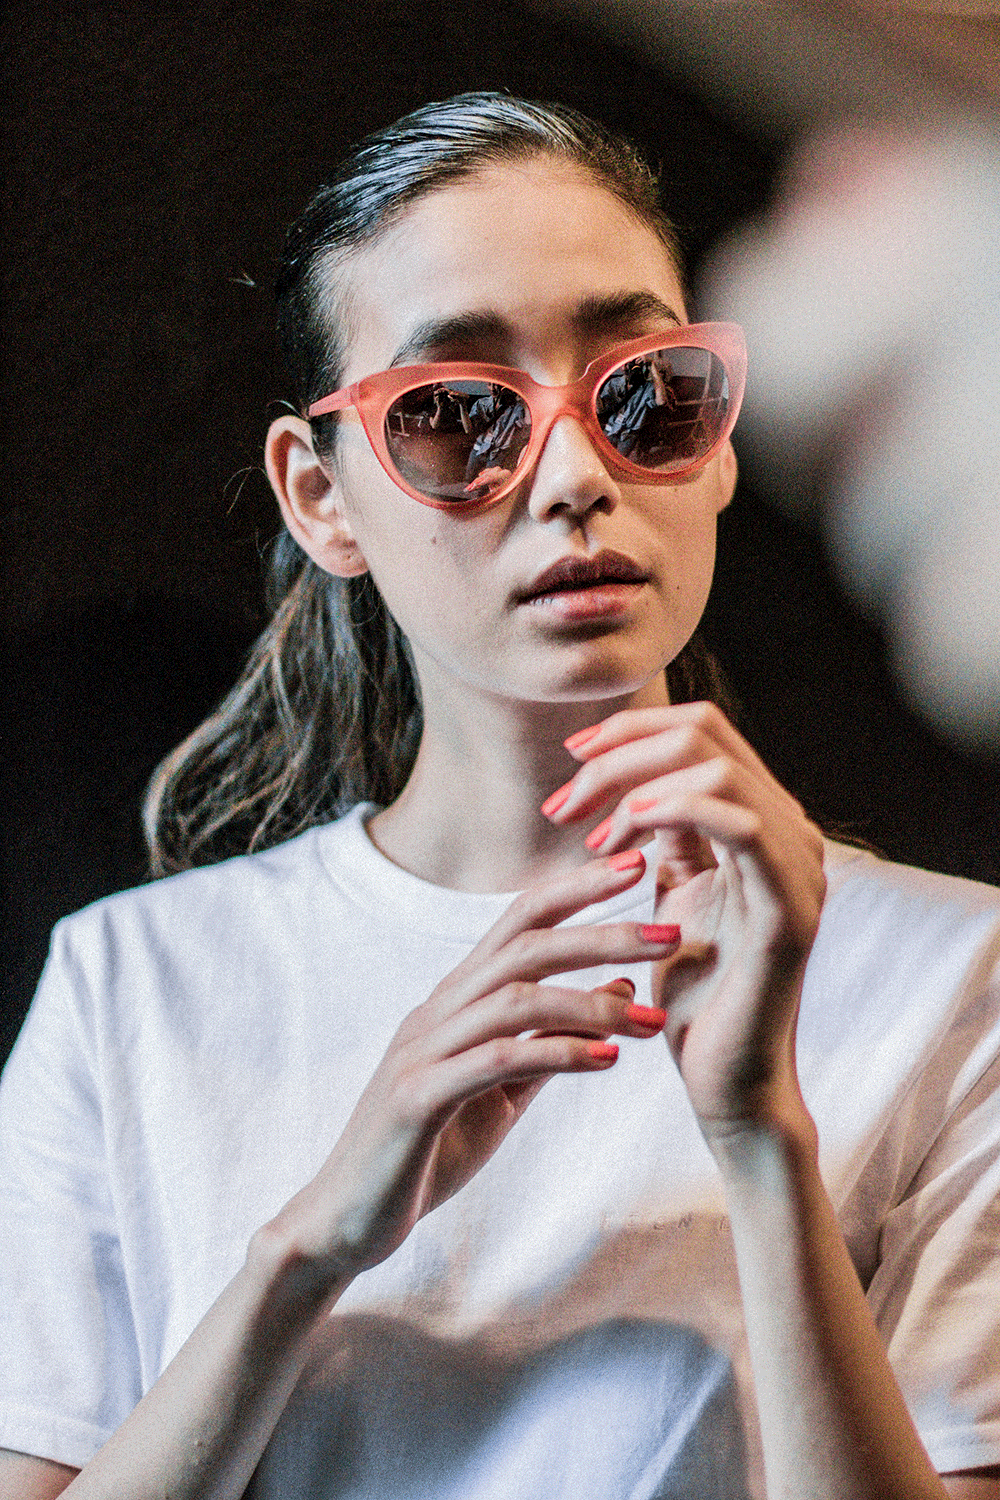 HIEN LE SS18 BERLIN FASHION WEEK MERCEDES-BENZ DESIGNER NEUBAU EYEWEAR